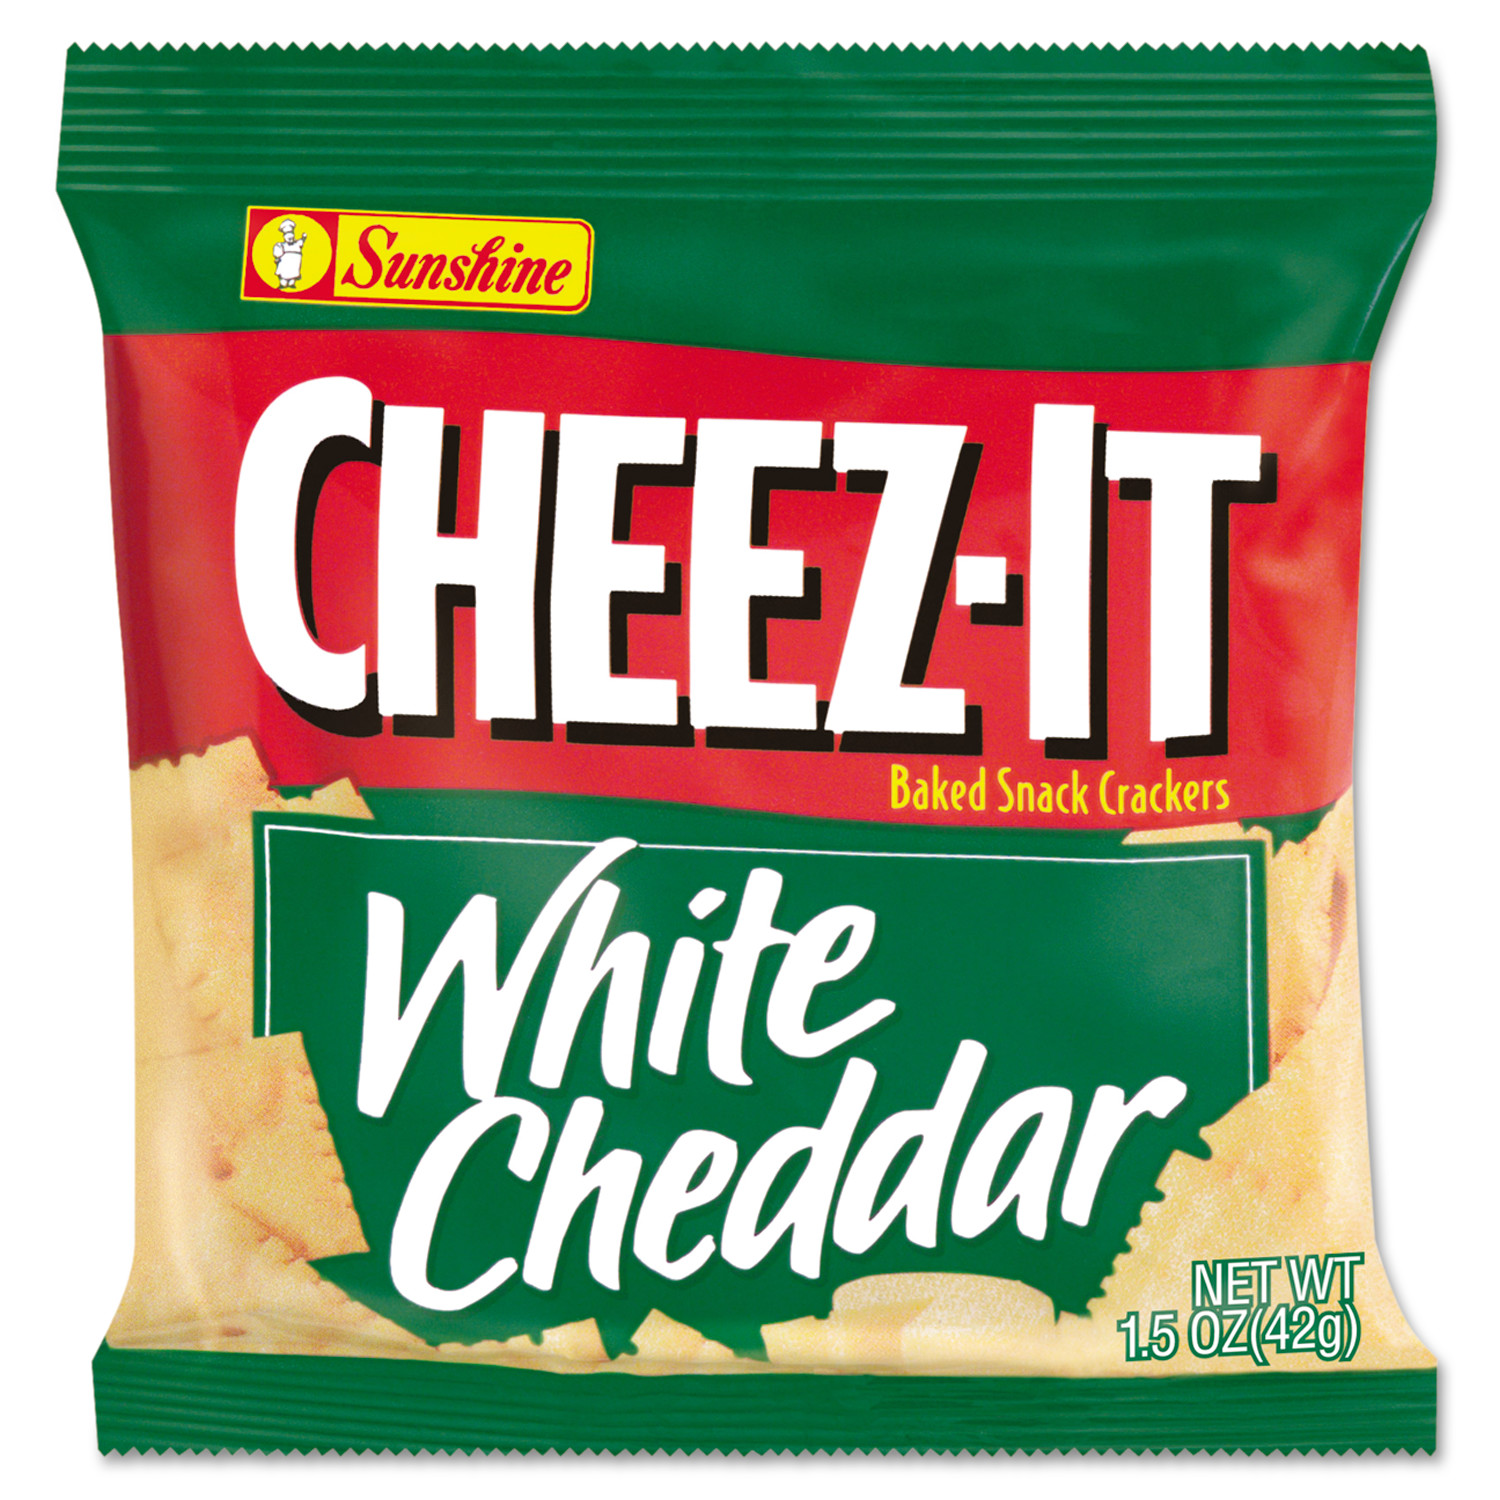 Sunshine Cheez-It Crackers, 1.5oz Single-Serving Snack Bags, White Cheddar, 8/Box